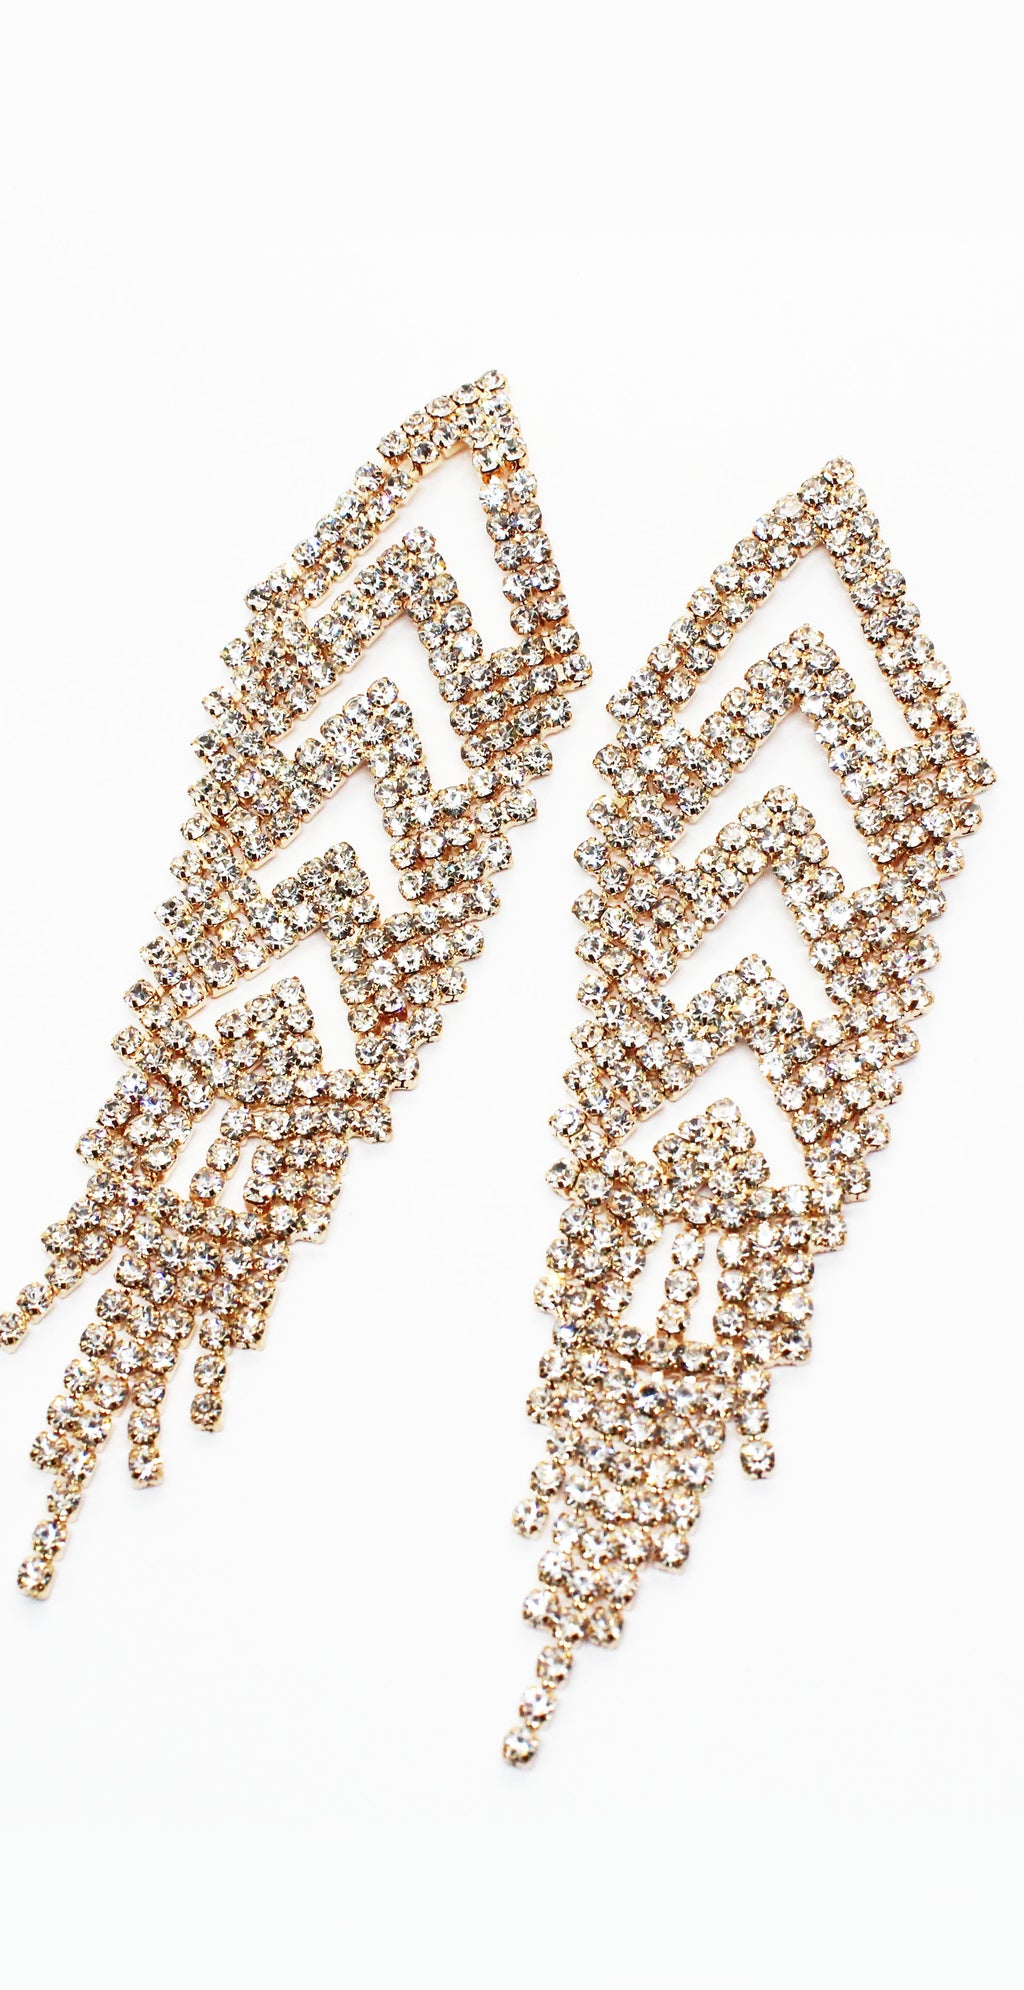 Too Glam with the Gold Rhinestone Earrings